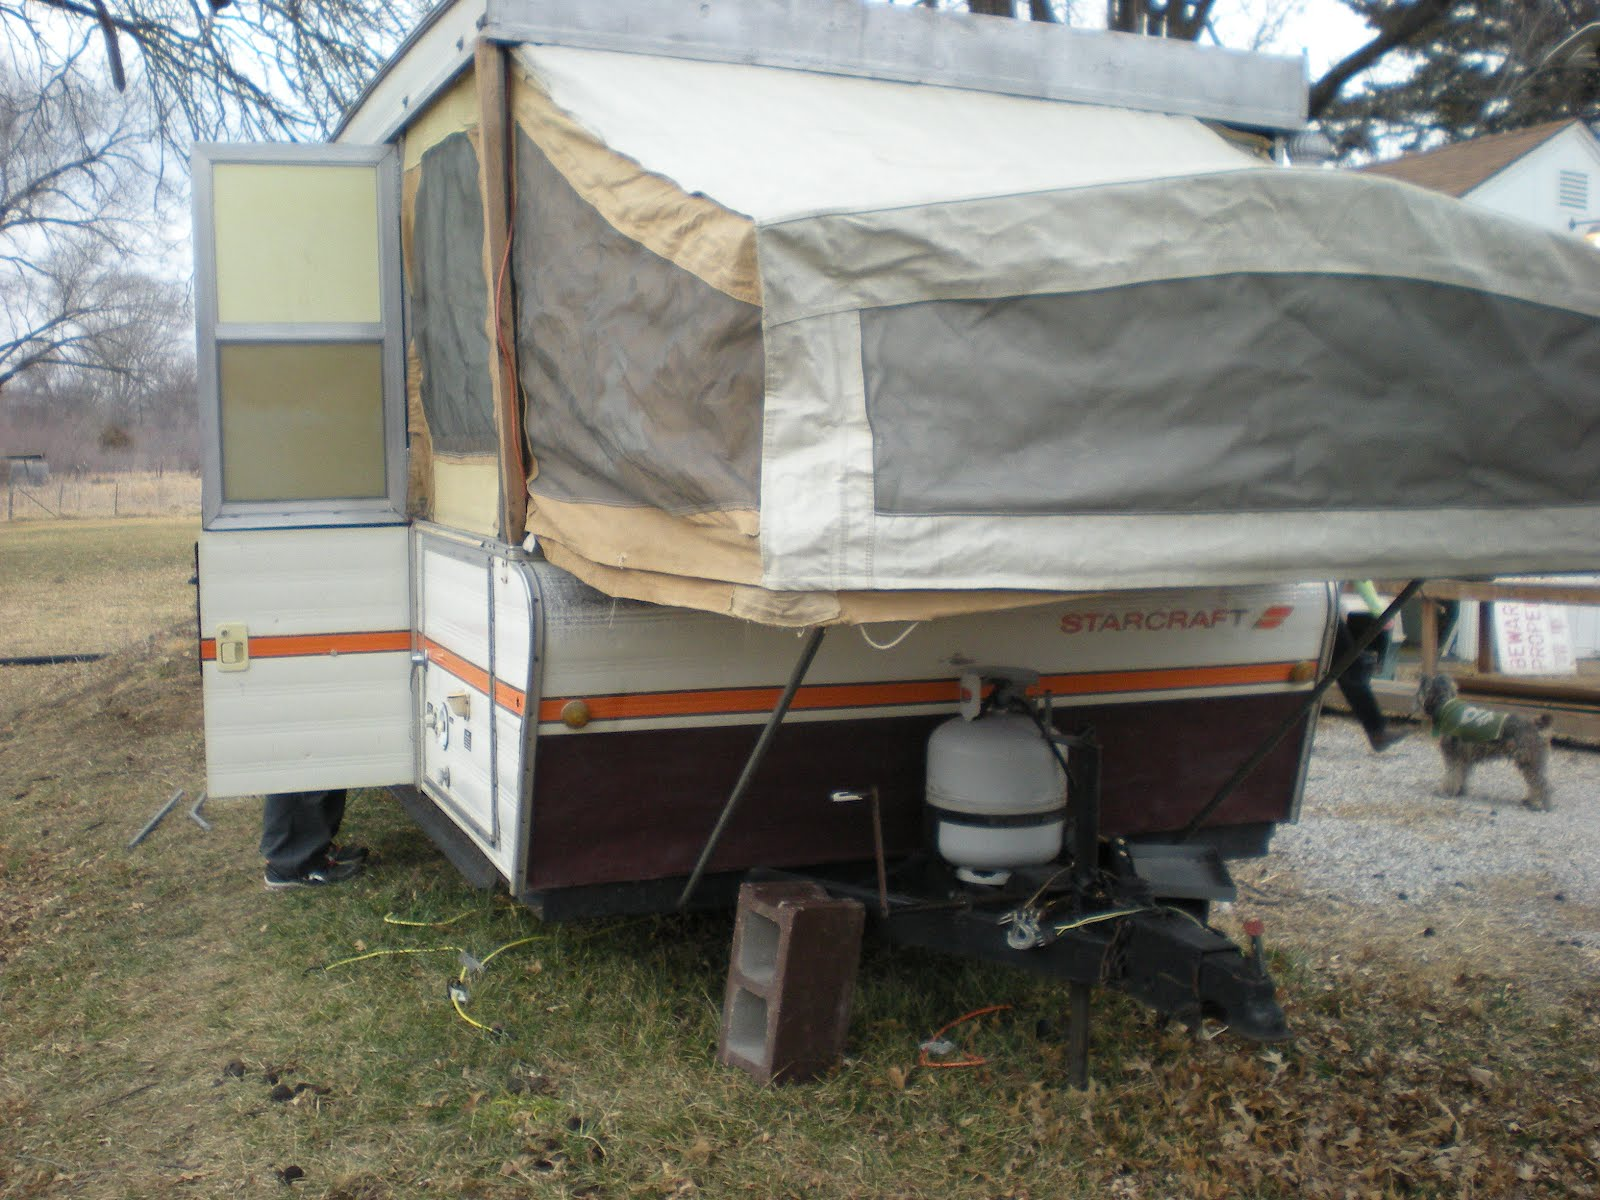 Rational Living: The Camper Project